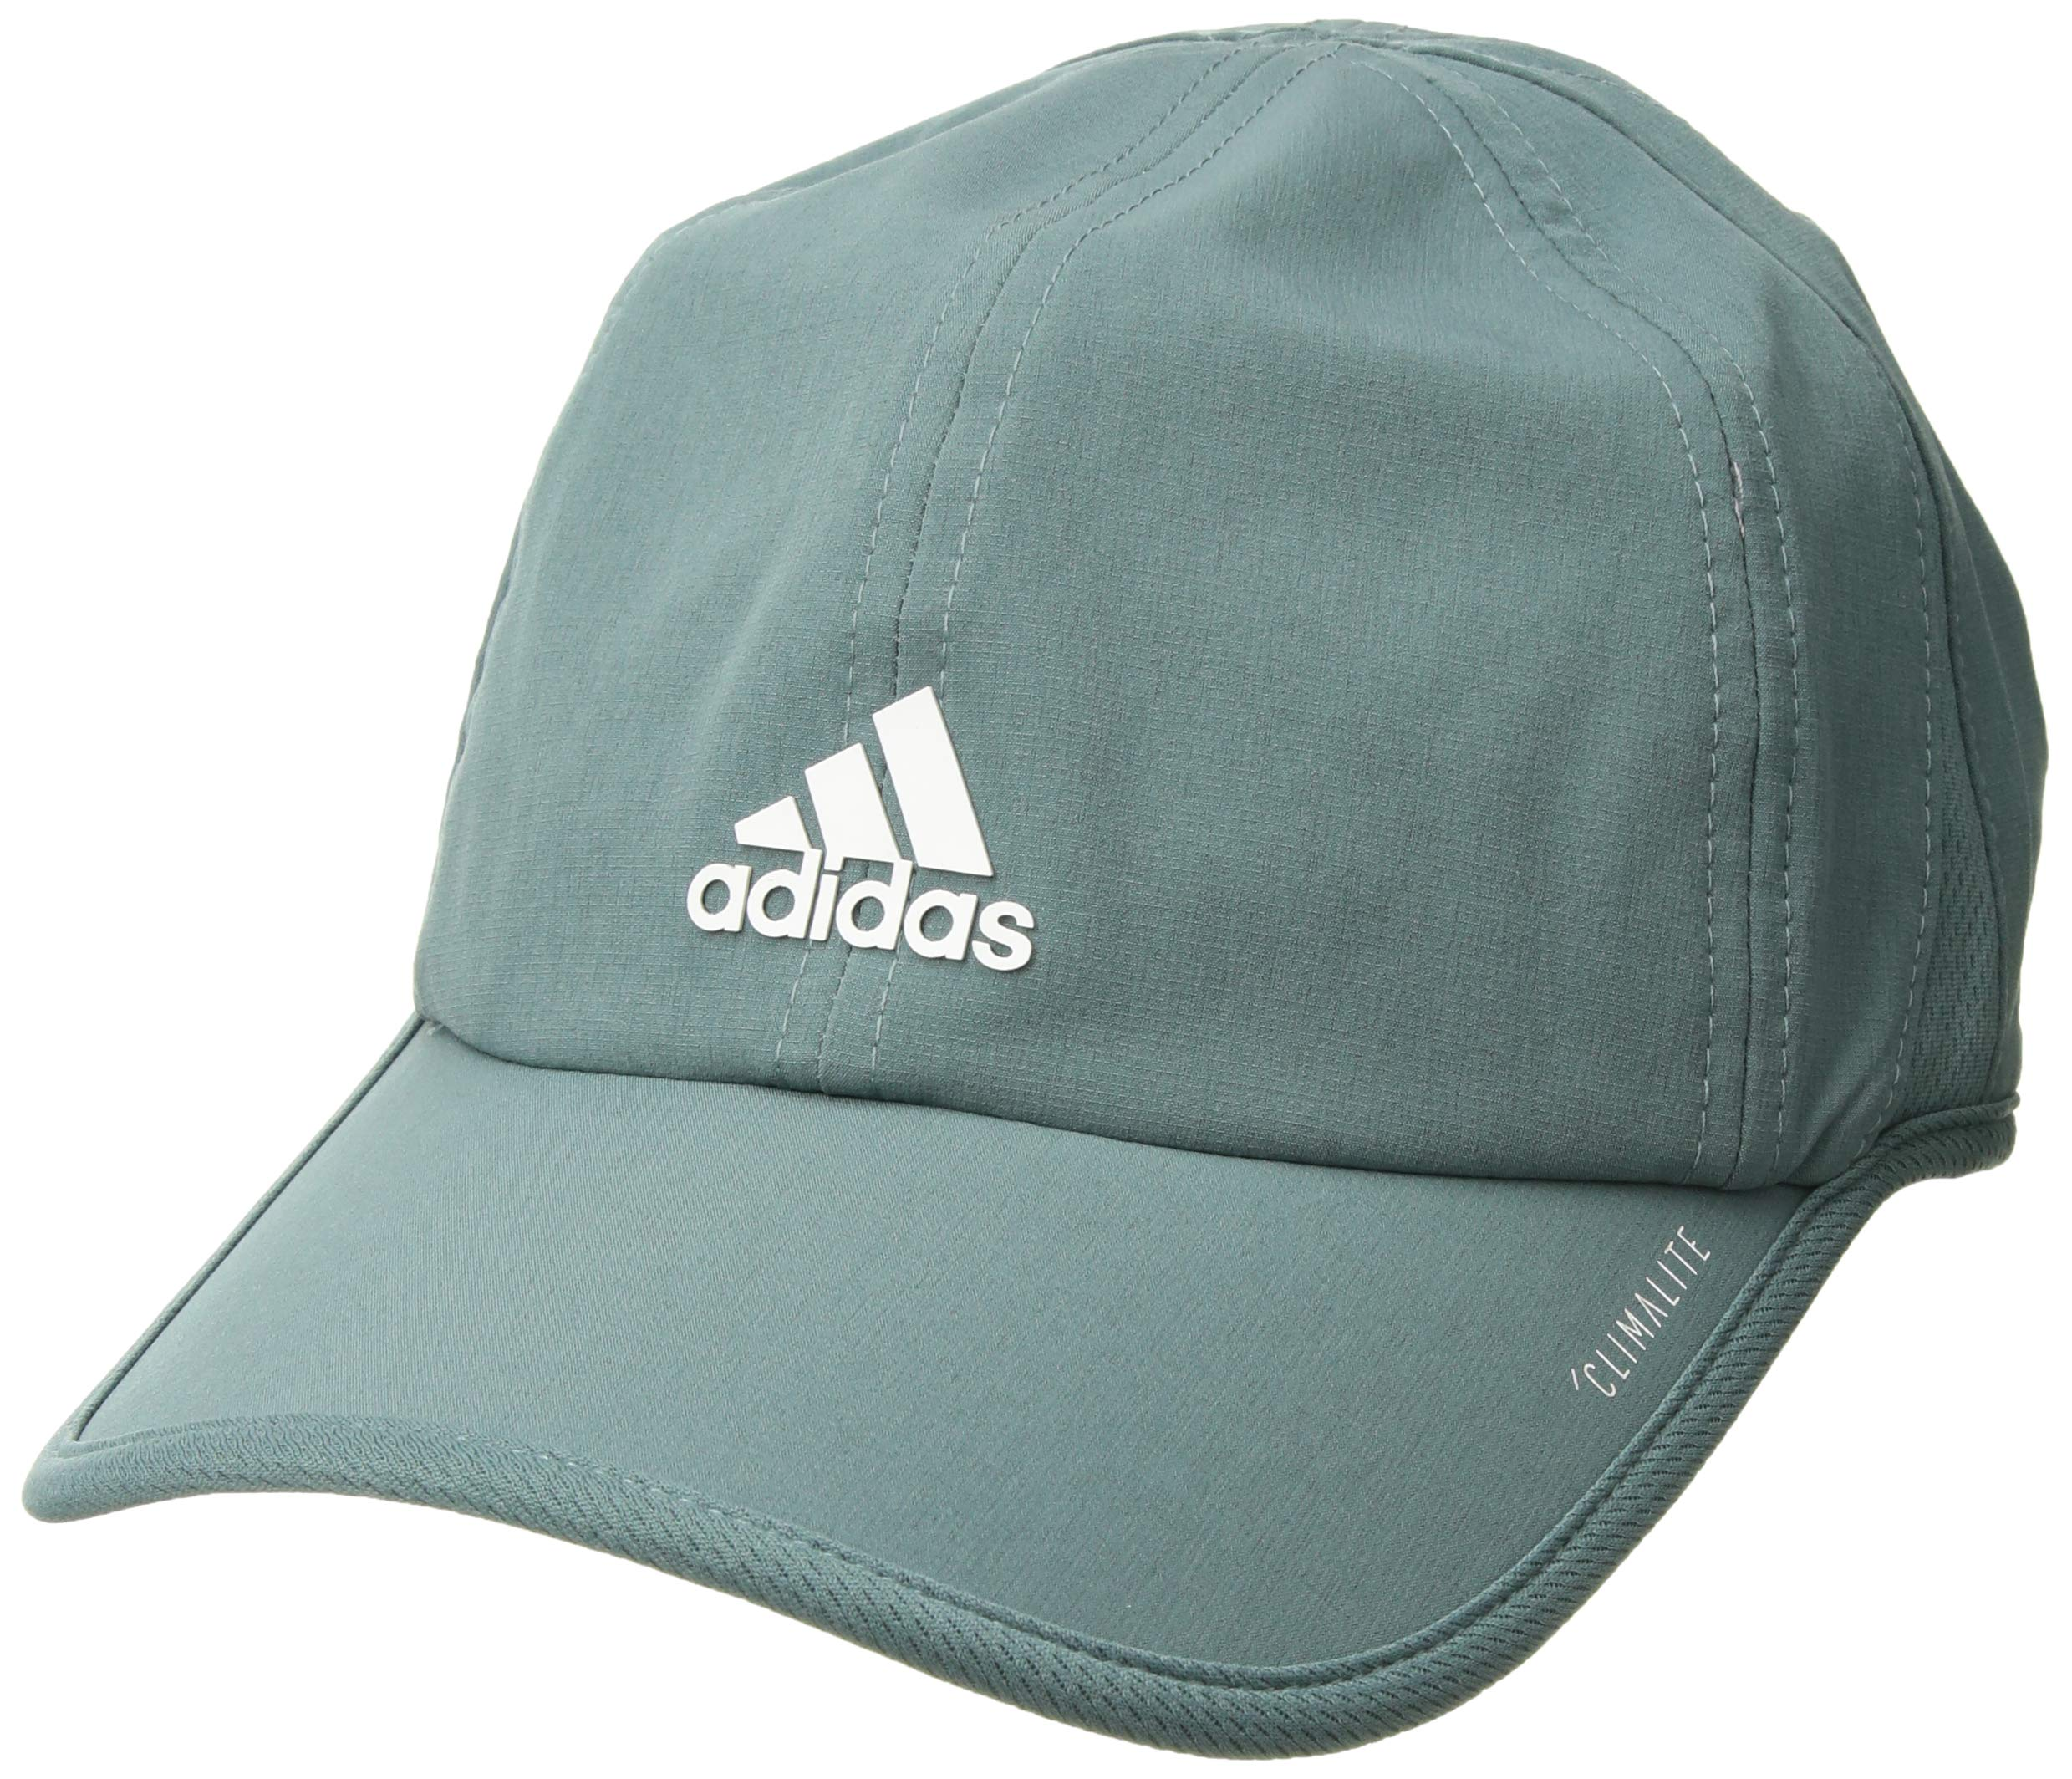 adidas Women's Superlite Relaxed Adjustable Performance Cap, Raw Green/White, One Size